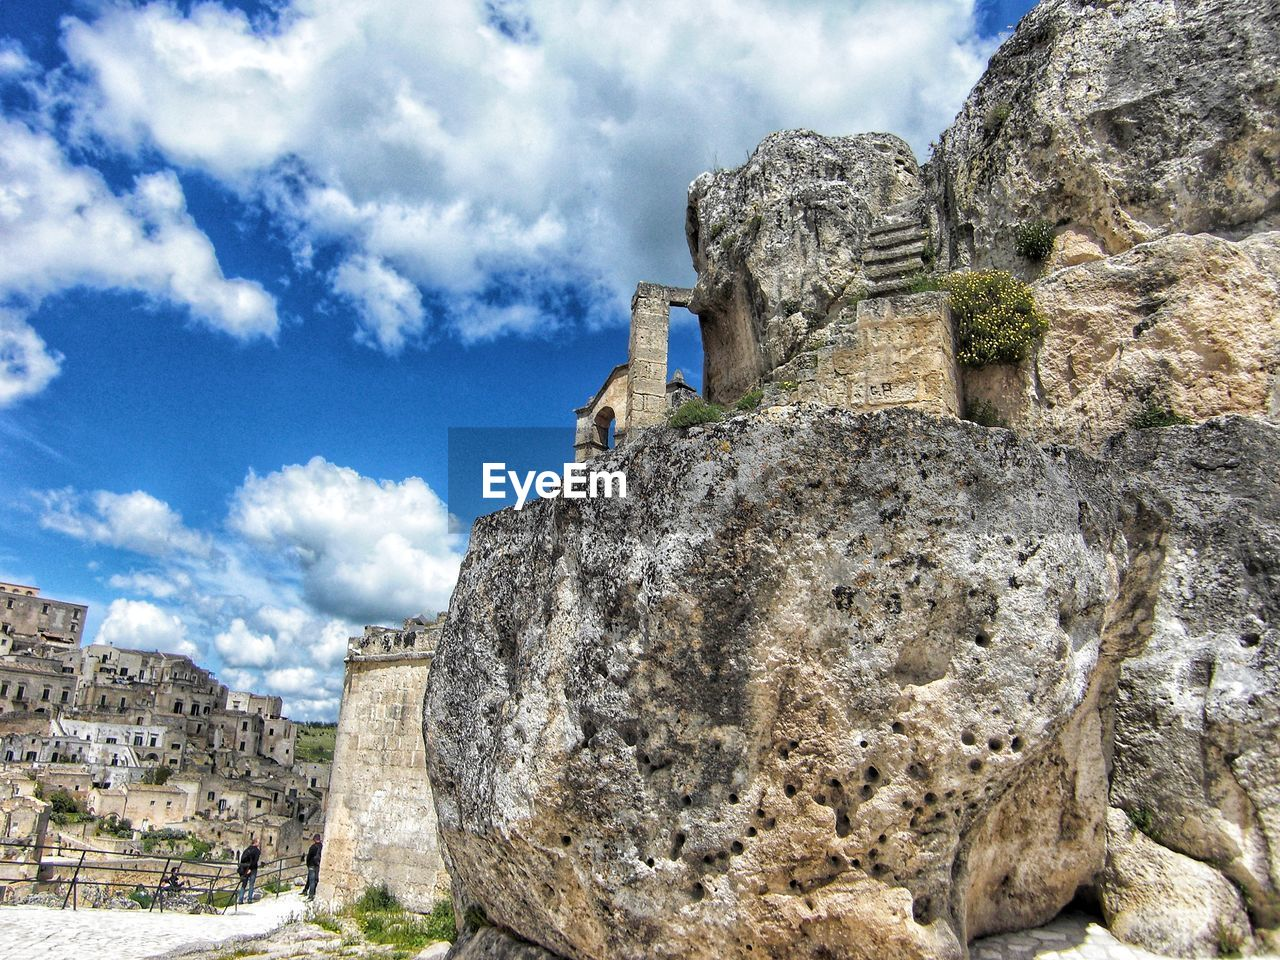 built structure, architecture, cloud - sky, sky, history, building exterior, the past, ancient, rock, day, building, nature, solid, old ruin, low angle view, rock - object, no people, rock formation, travel destinations, travel, ancient civilization, outdoors, archaeology, ruined, stone wall, ancient history